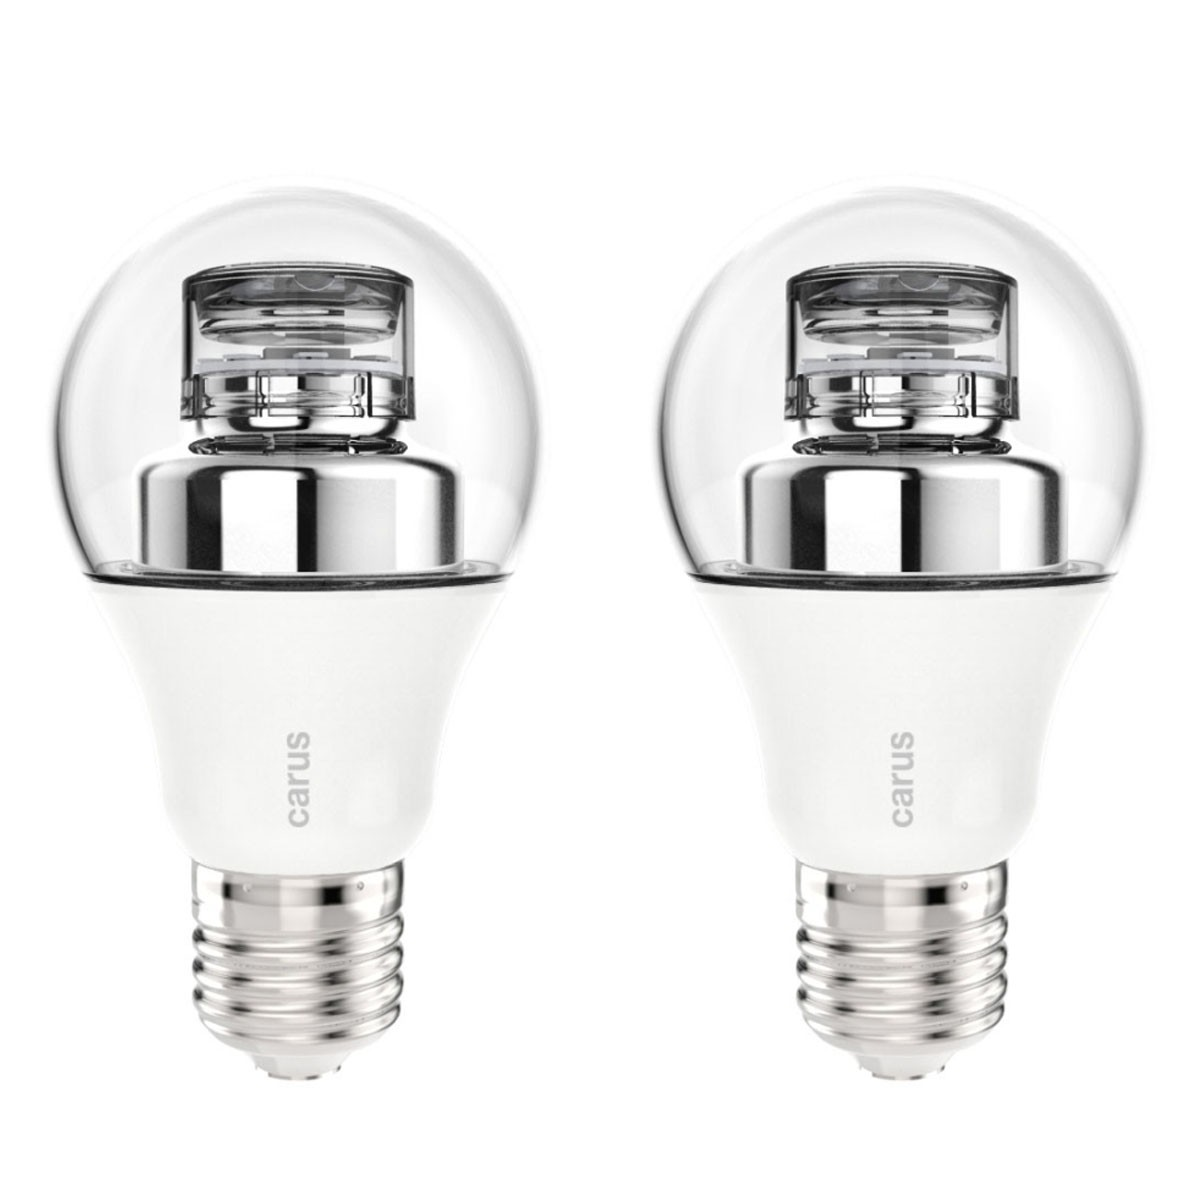 Led Lampen Dimmbar Carus Led Lampe Klar E27 8 6w 48w 600lm Ip50 Warm Weiß 2700k Dimmbar Germany 2er